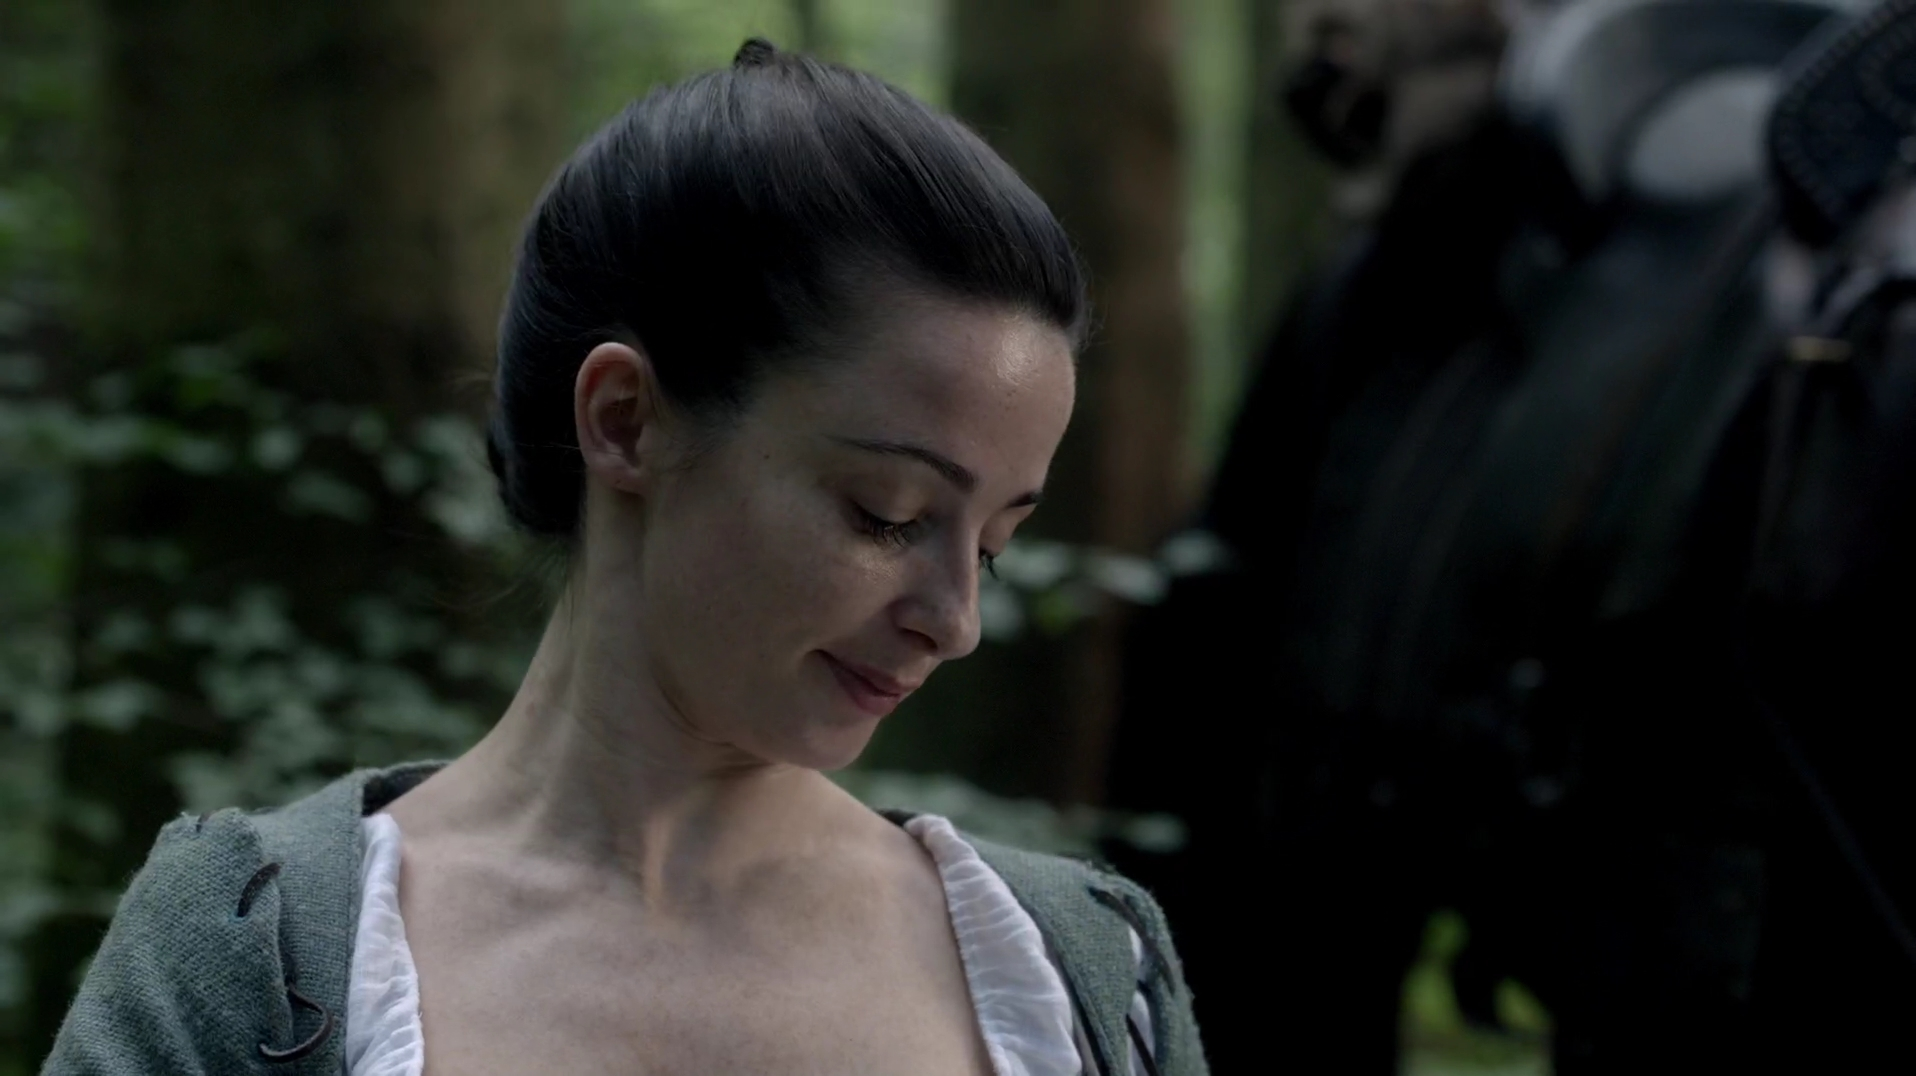 image Laura donnelly nude outlander s01e14